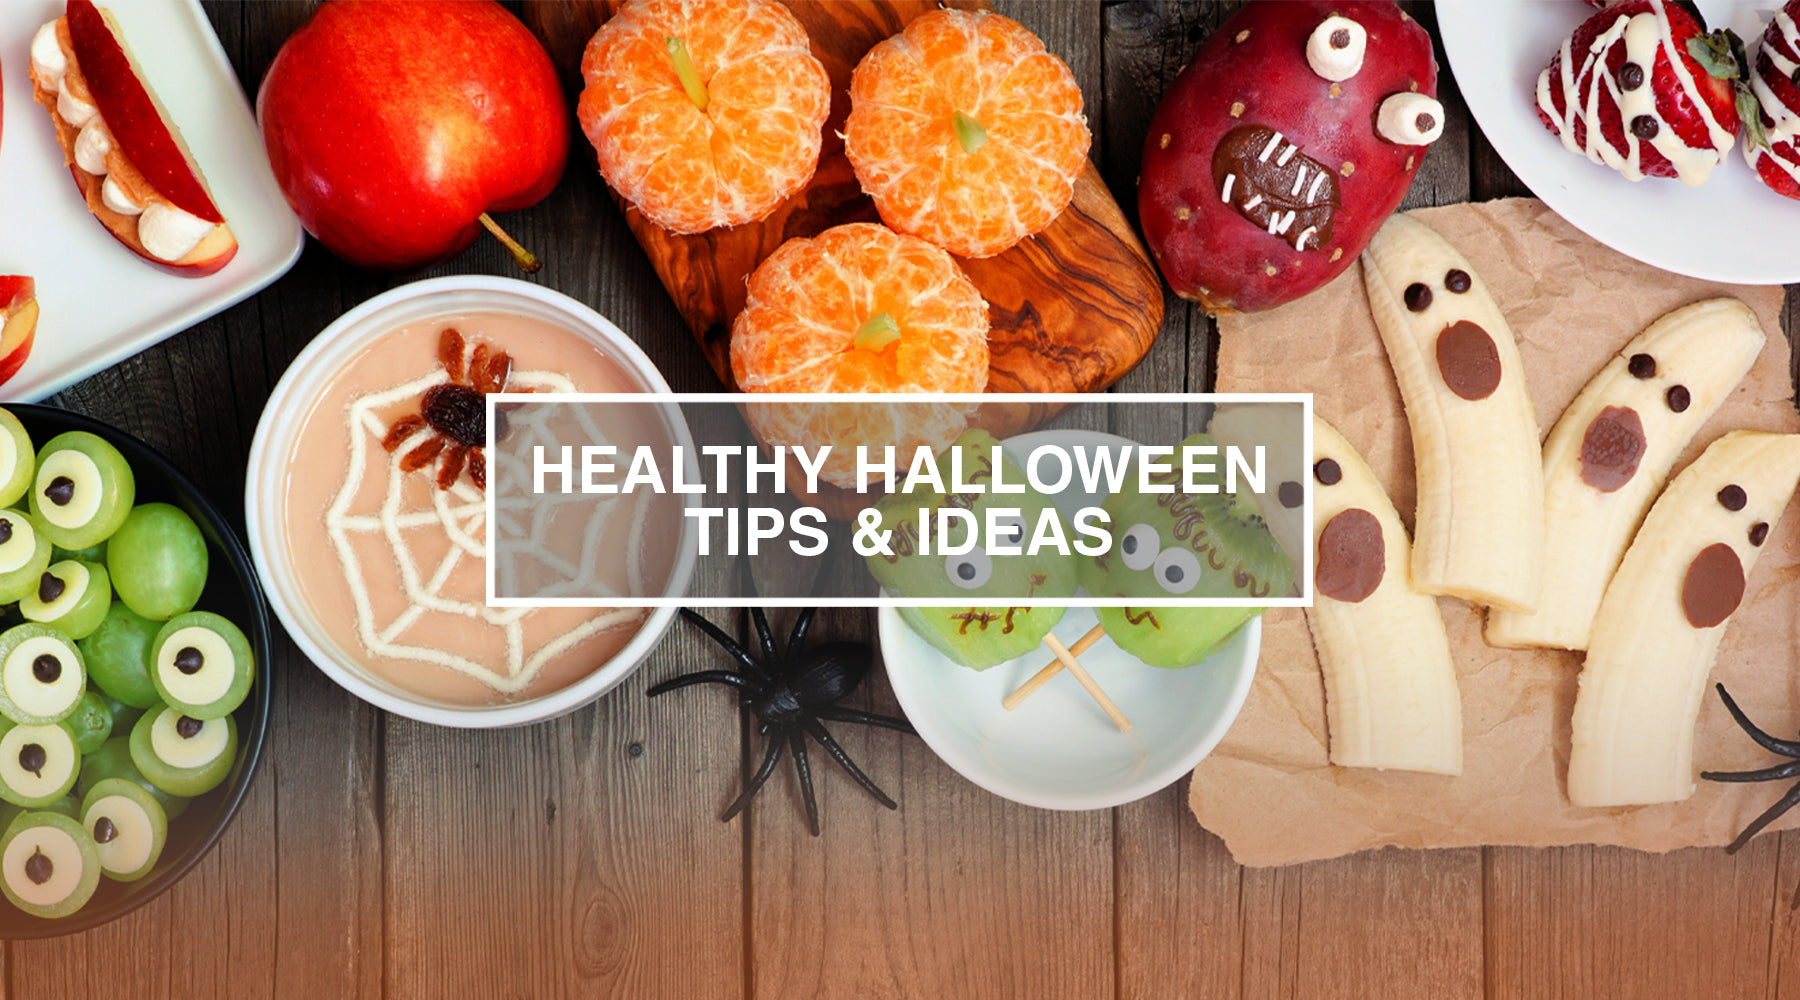 Healthy Halloween Tips & Ideas